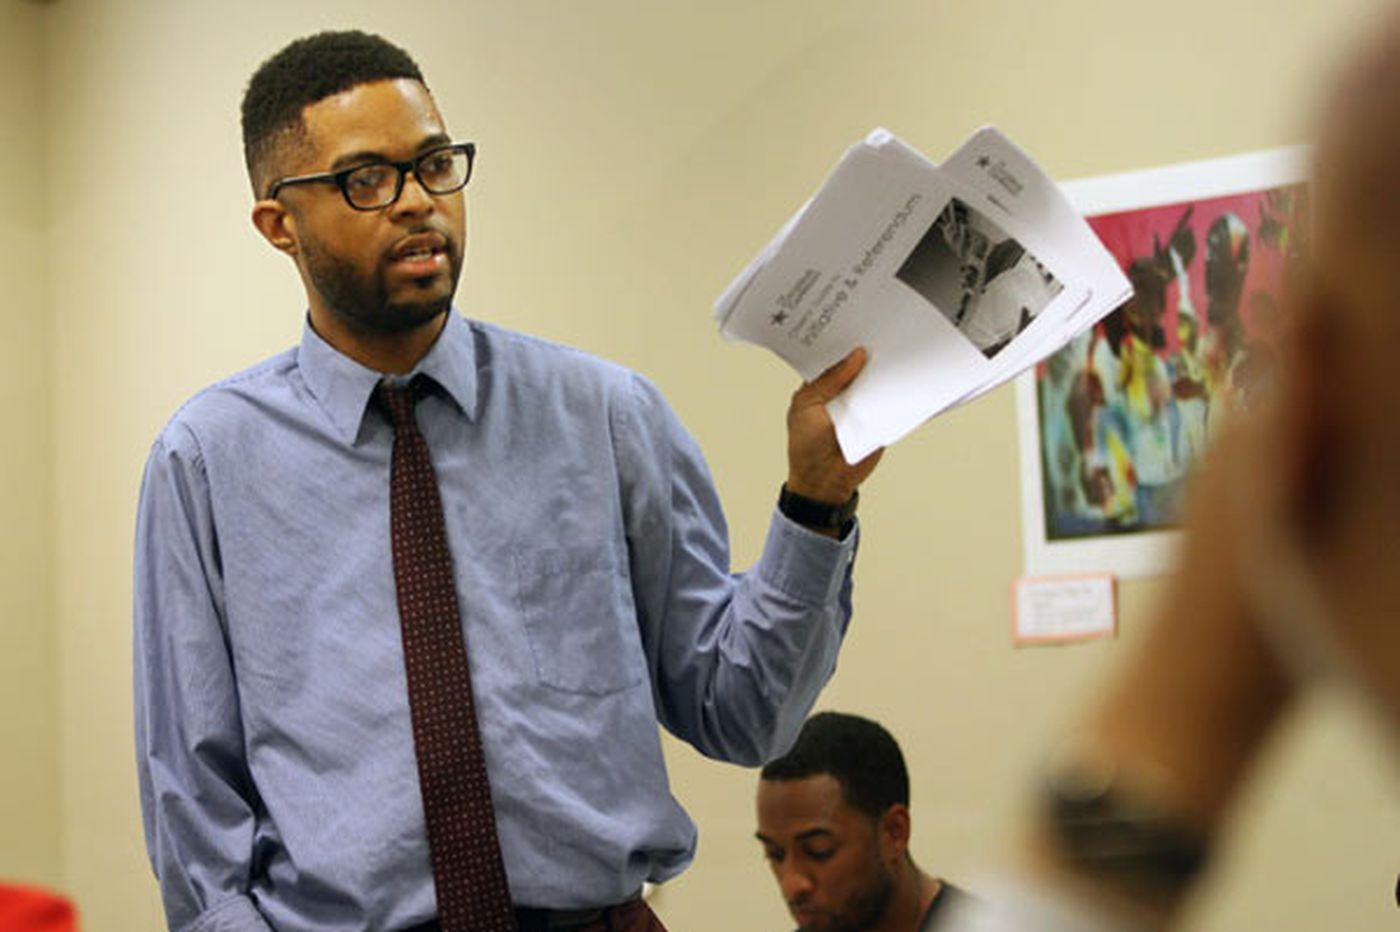 Camden activist pushing for school-board elections